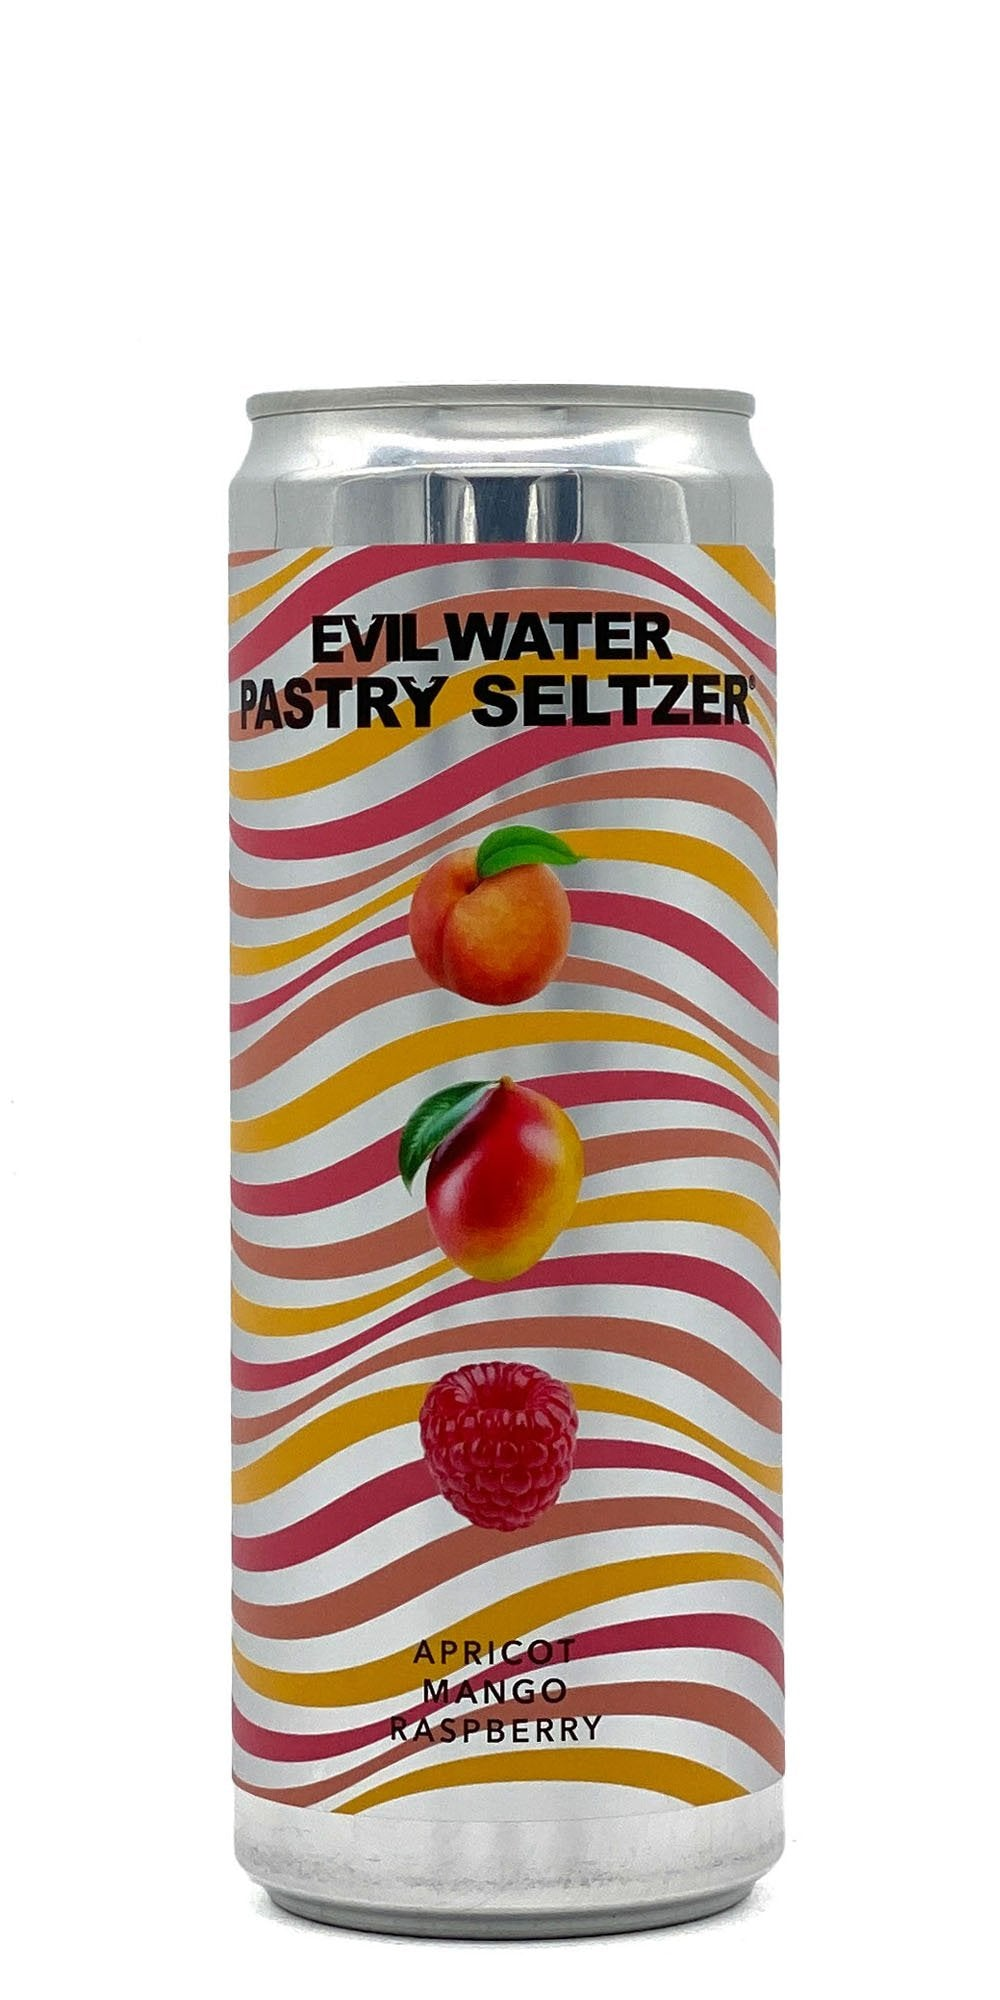 Evil Water - Pastry Seltzer: Apricot, Mango, Raspberry